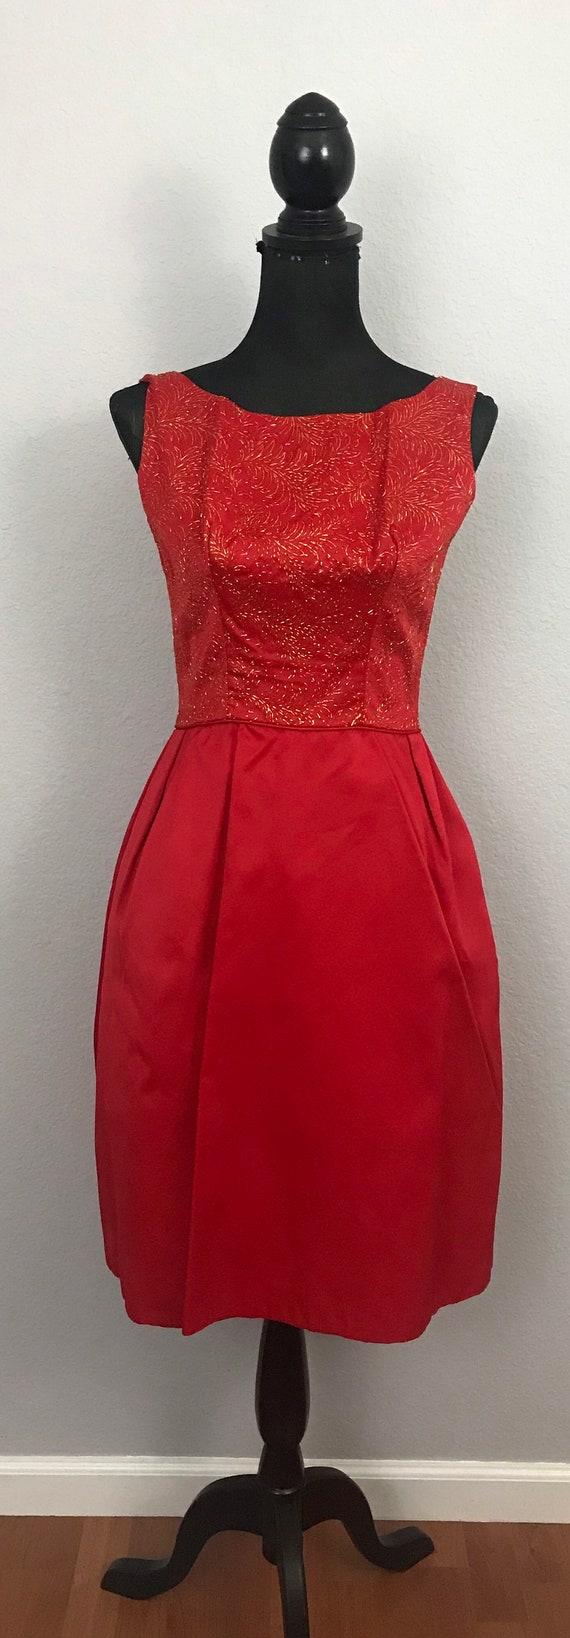 1950s red dress with gold lurex - image 3